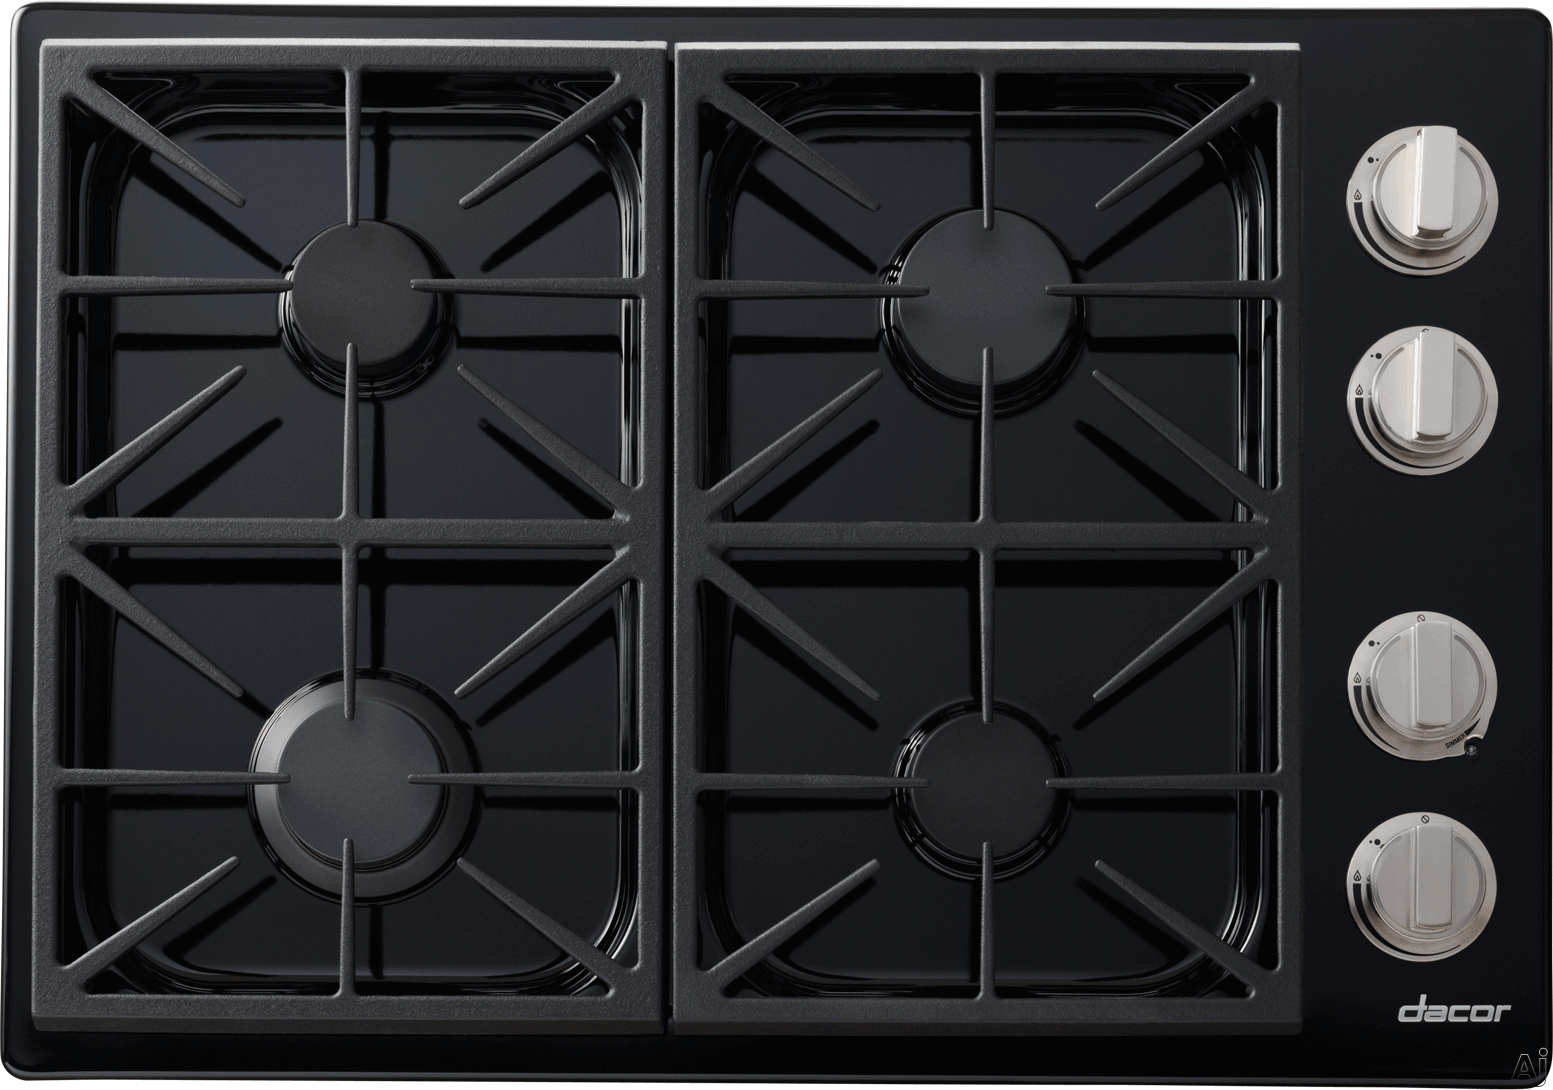 Dacor Discovery DYCT304GBLPH 30 Inch Gas Cooktop with 4 Sealed Burners, 18,000 BTU SimmerSear Burner, Continuous Grates, Scratch Resistant Finish, PermaFlame Technology and Illumina Burner Controls: Black, Liquid Propane, High Altitude